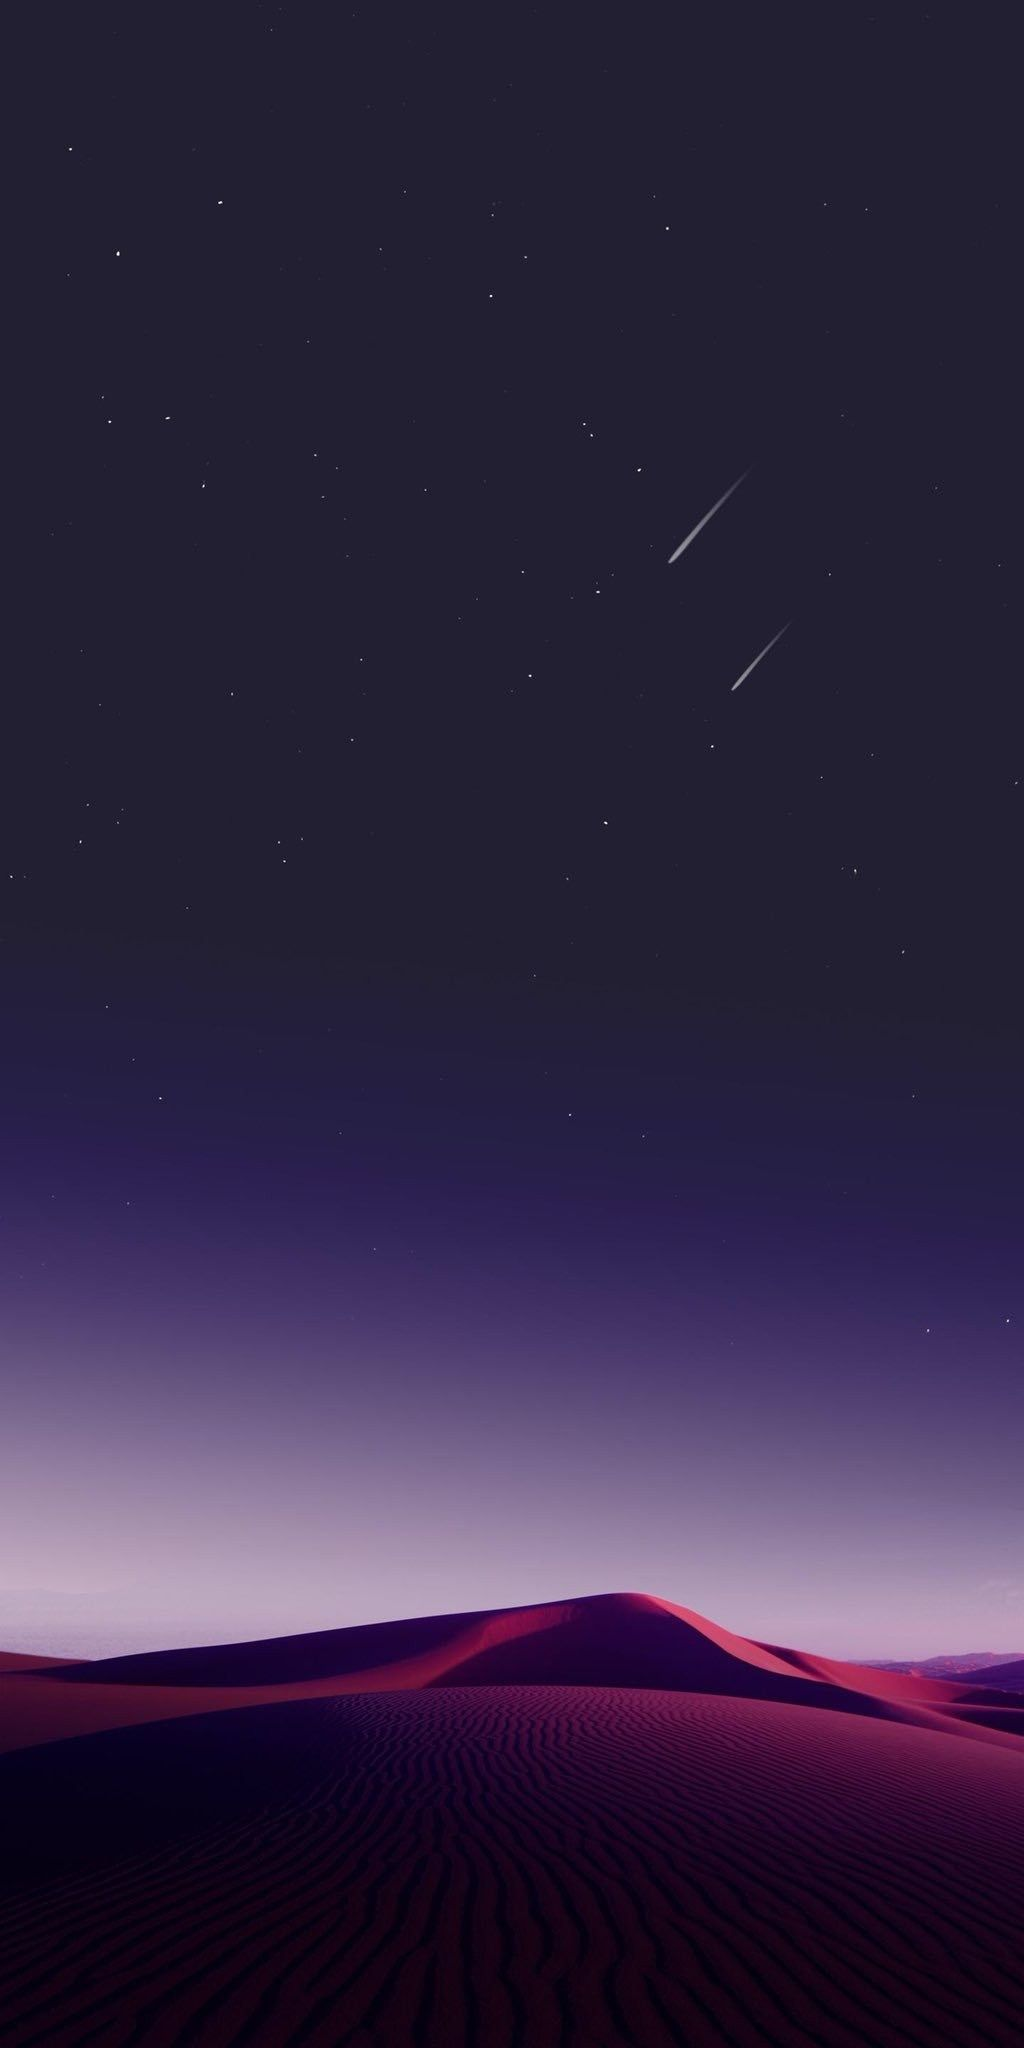 Night Stars Sky Purple Mountain Wallpaper Clean Galaxy Colour Papel De Parede Paisagens Papel De Parede Para Iphone Papel De Parede Para Samsung Galaxy